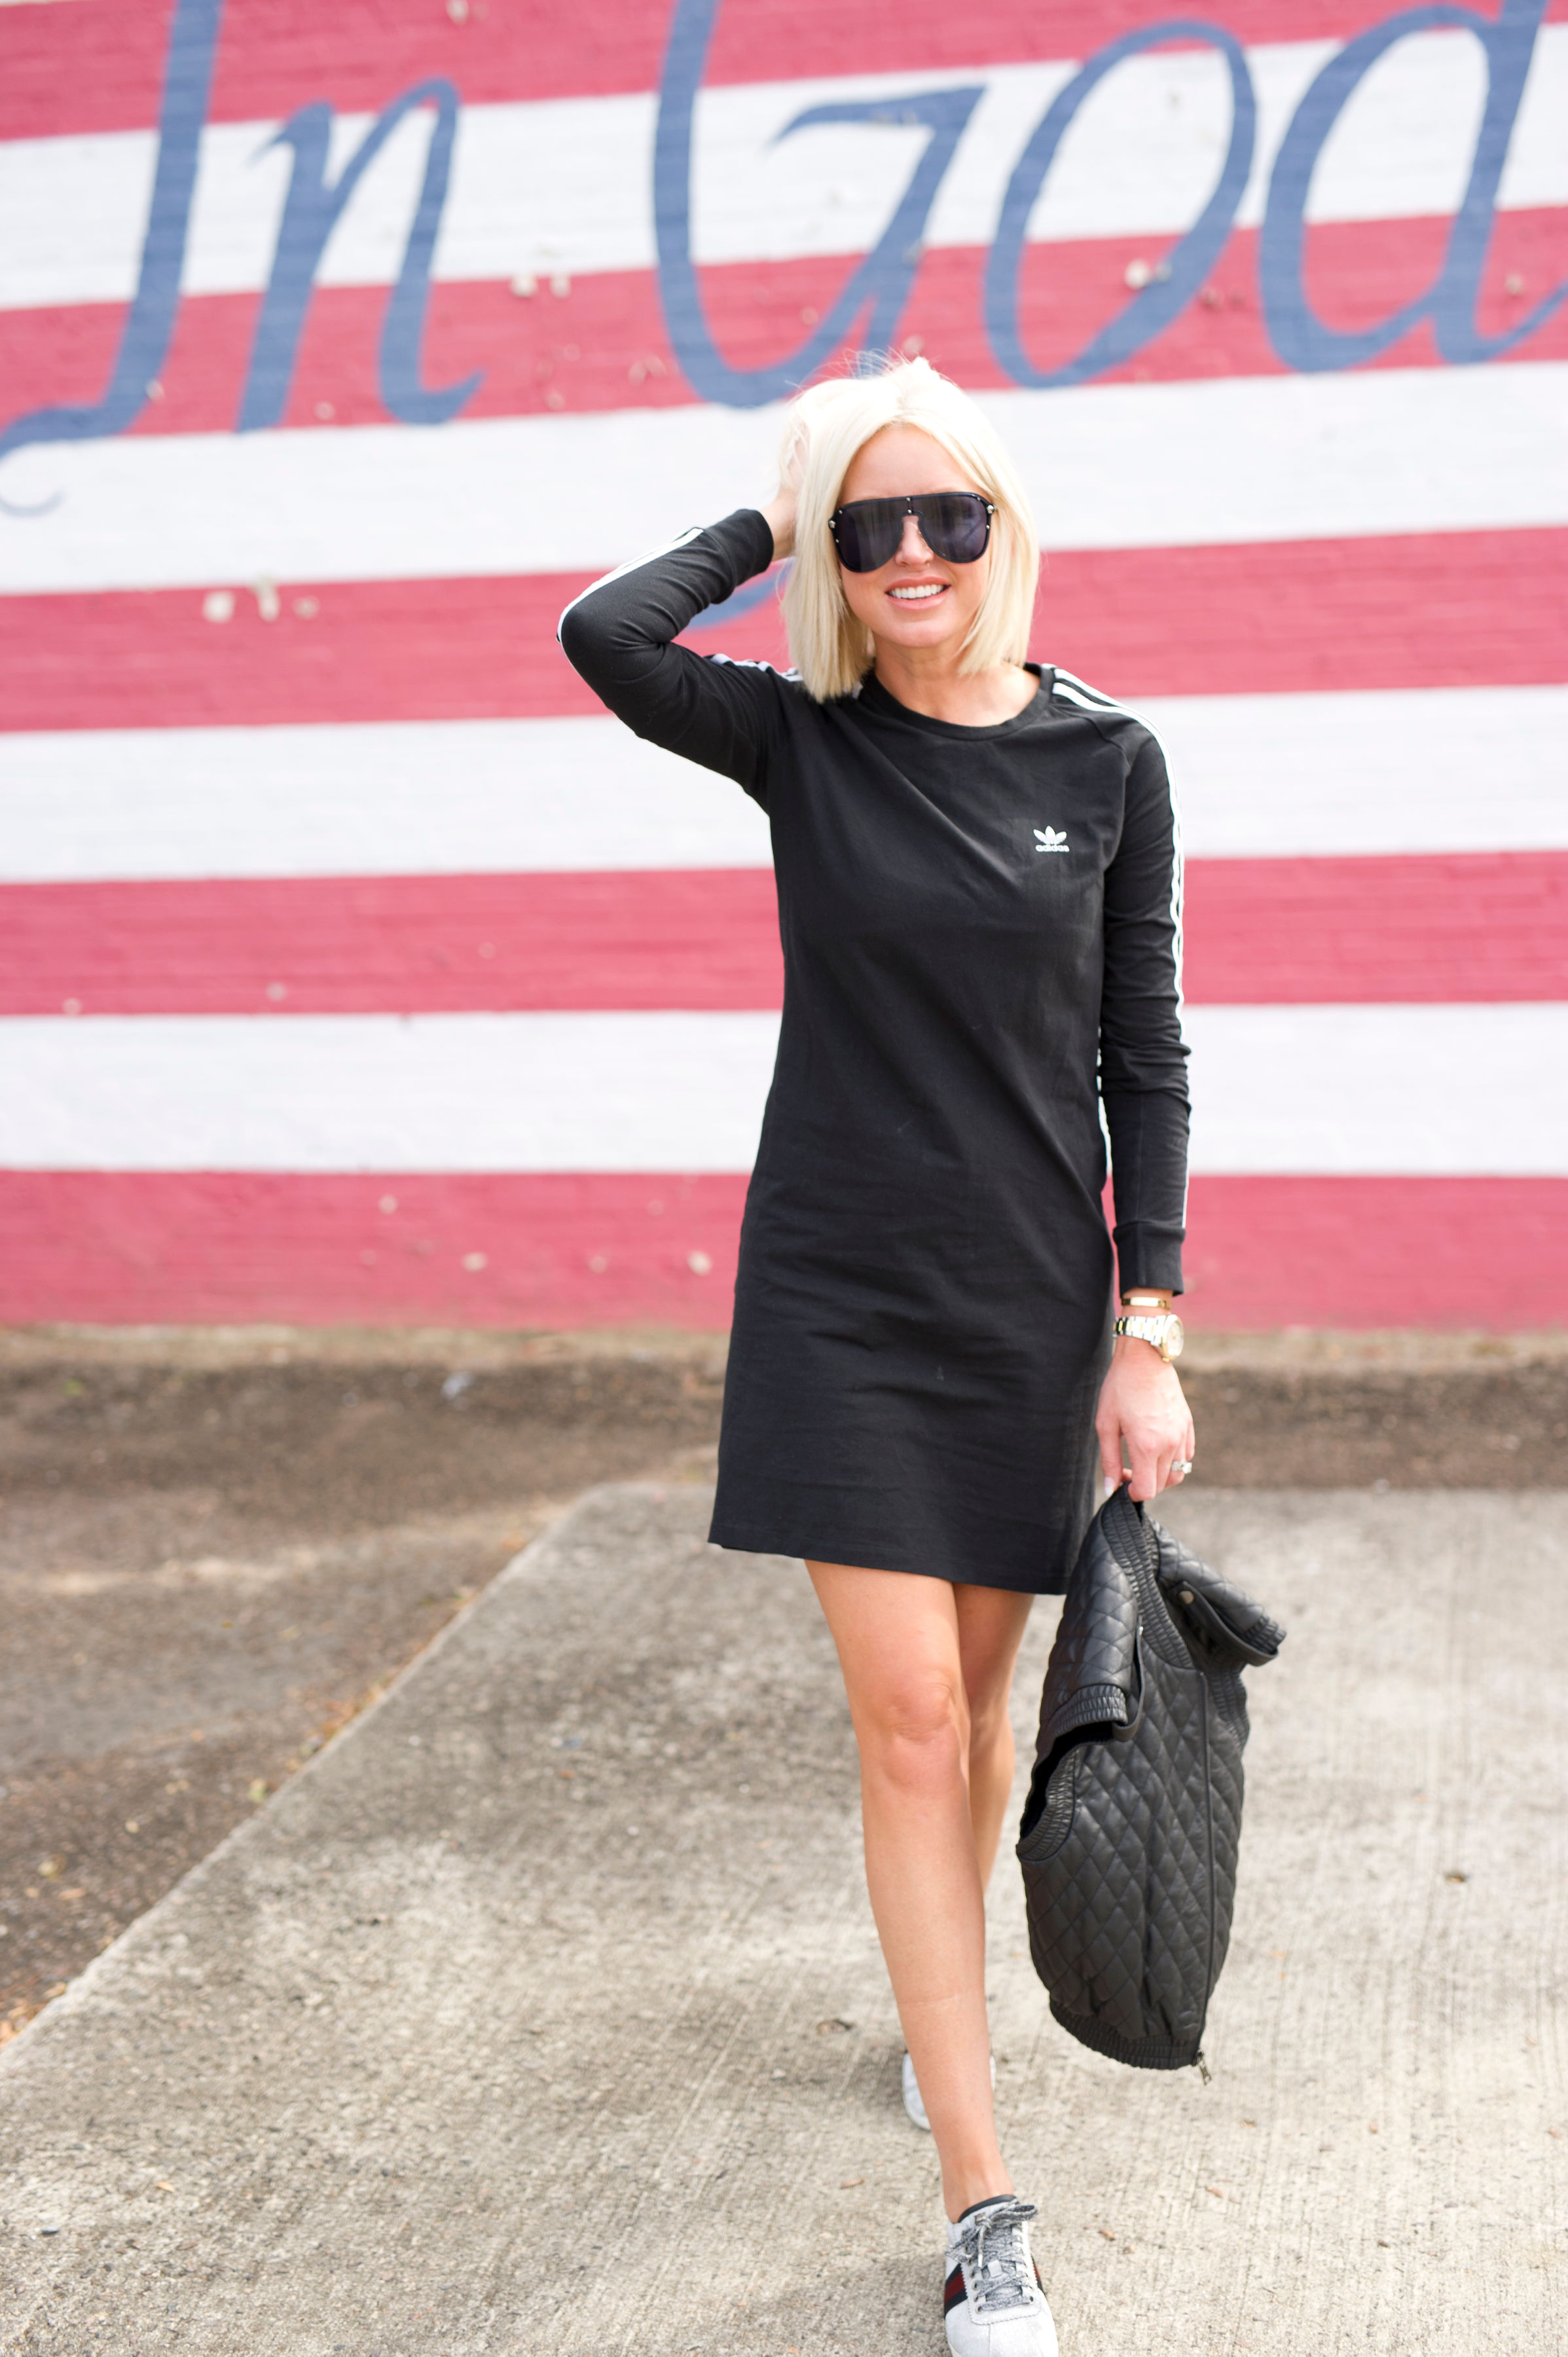 """Since an Adidas dress is technically """"athleisure wear"""" my first styling thought was, I'll just pair it with sneakers. - Styling the dress for a casual avenue felt like the safest option, I would feel most comfortable in pulling off the lewk."""